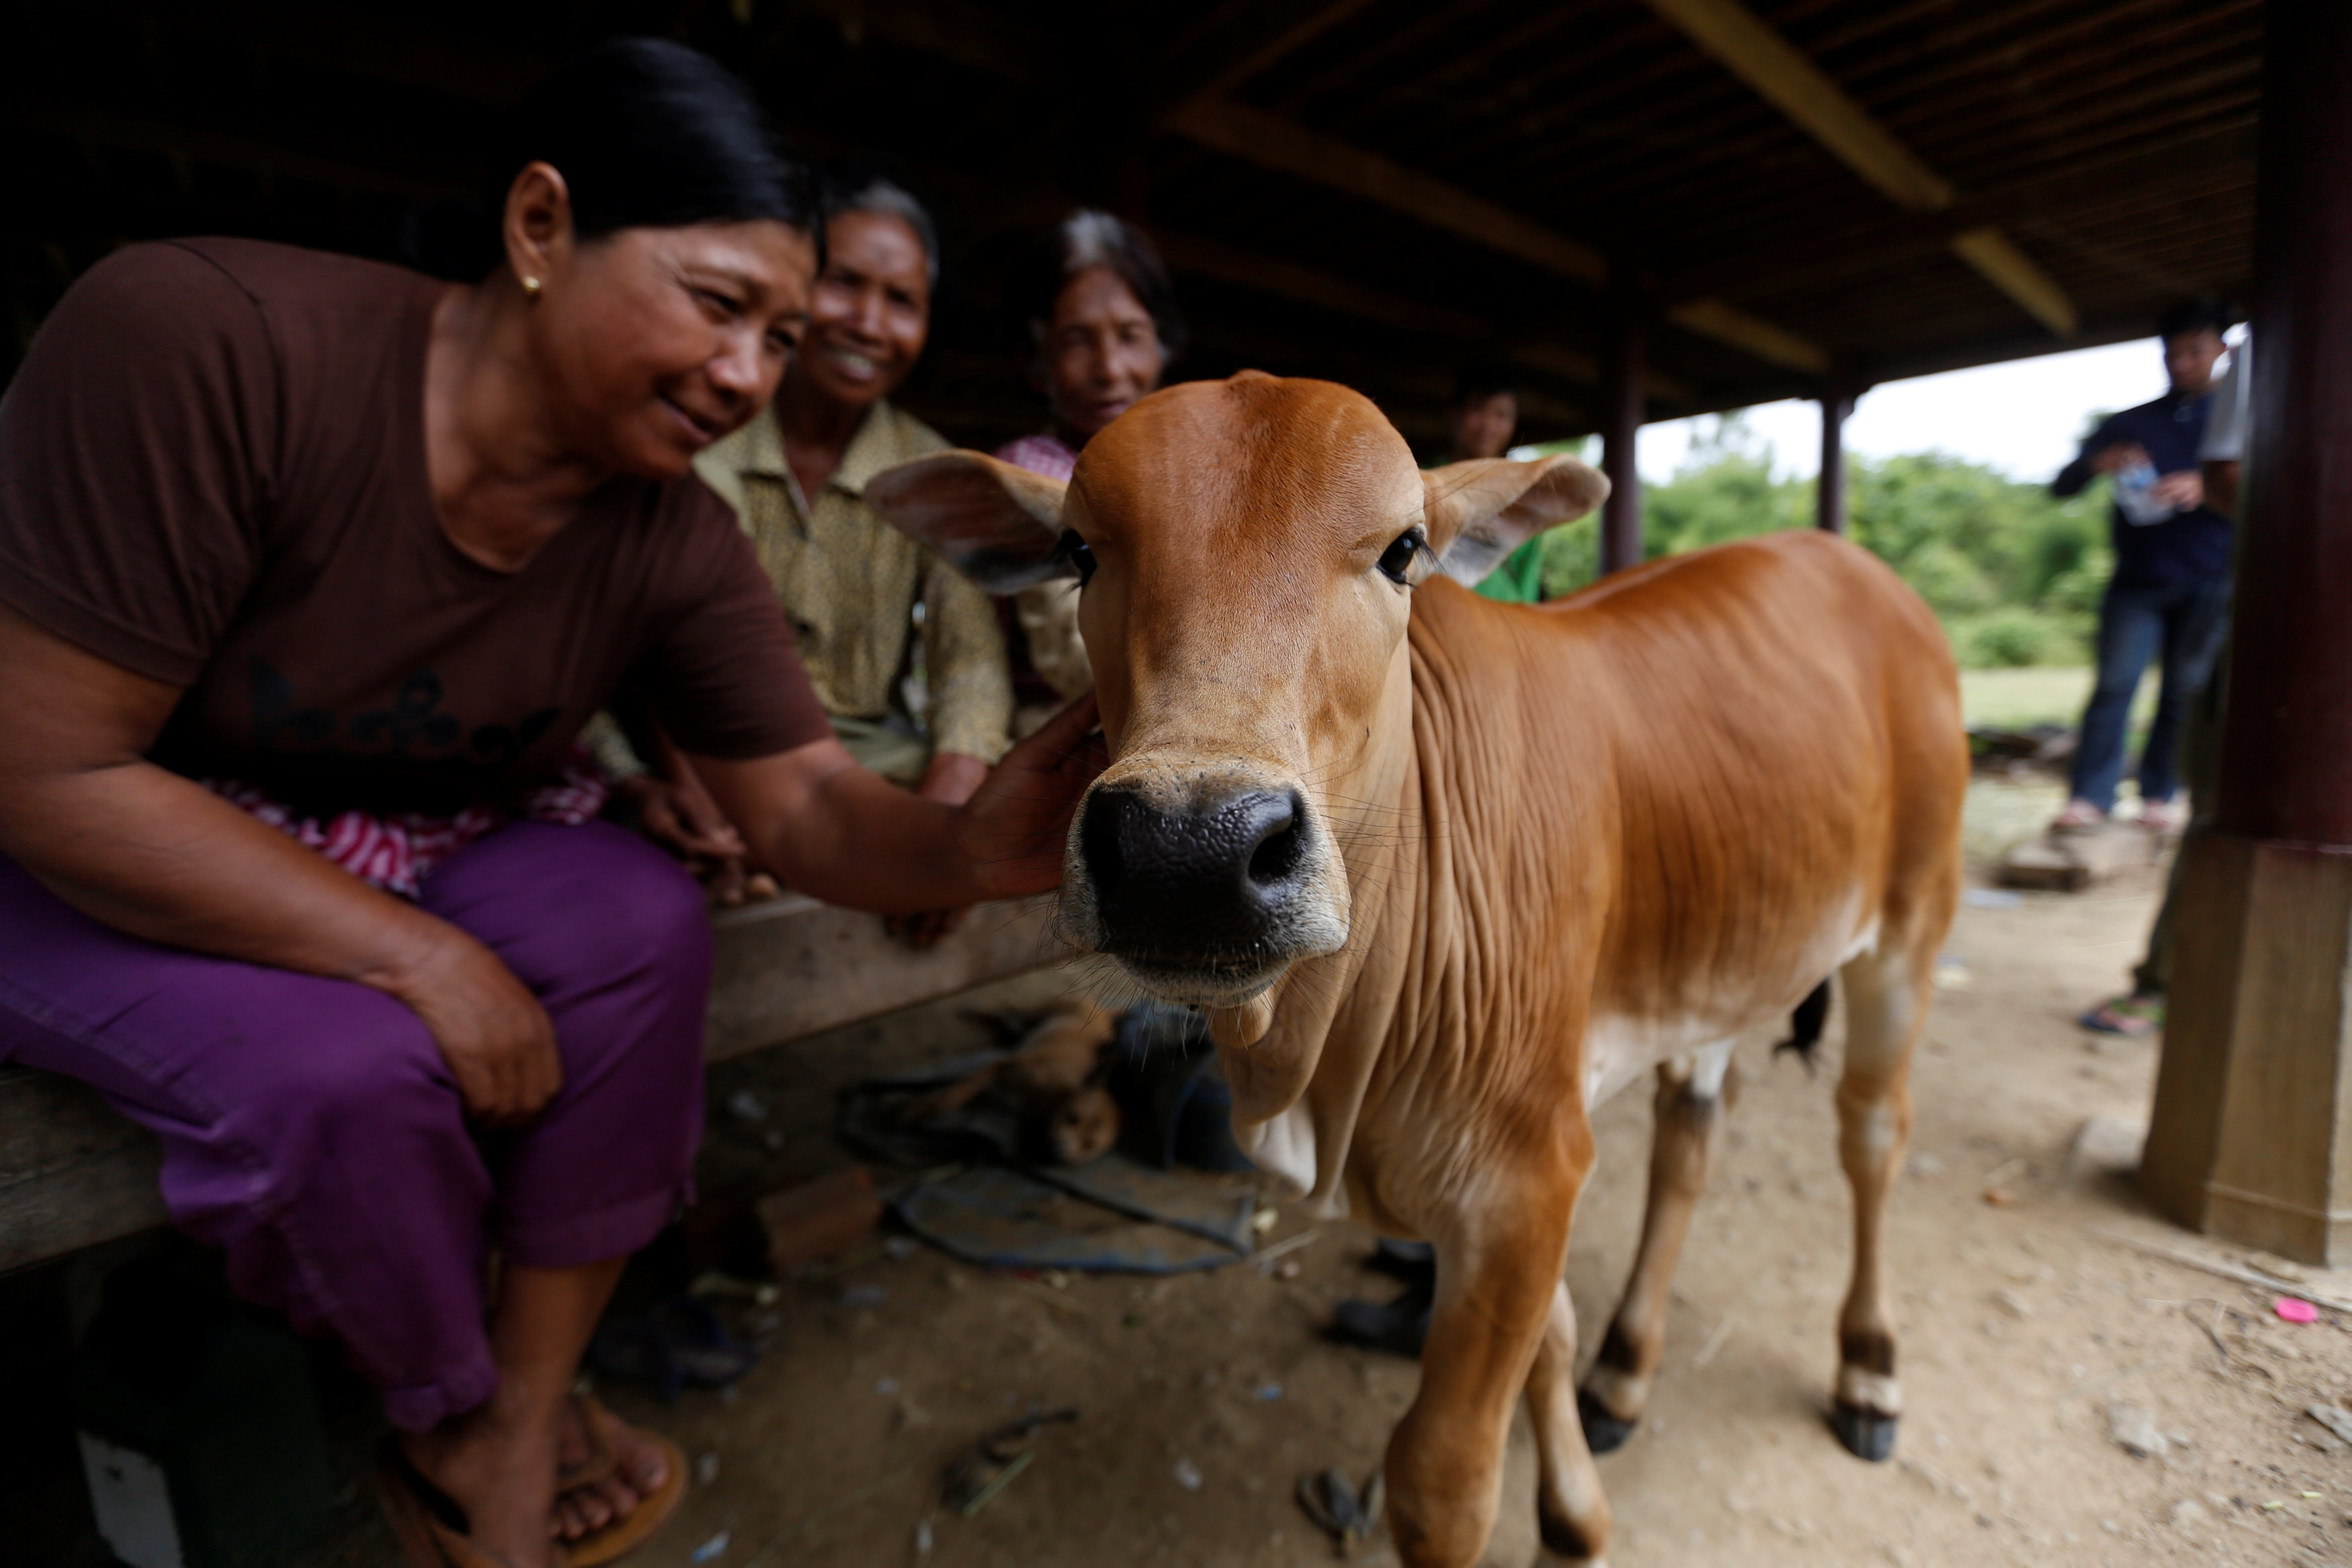 Relatives caress a cow in which they believe the family's patriarch was reborn in Kratie province, Cambodia, July 18, 2017. REUTERS/Samrang Pring